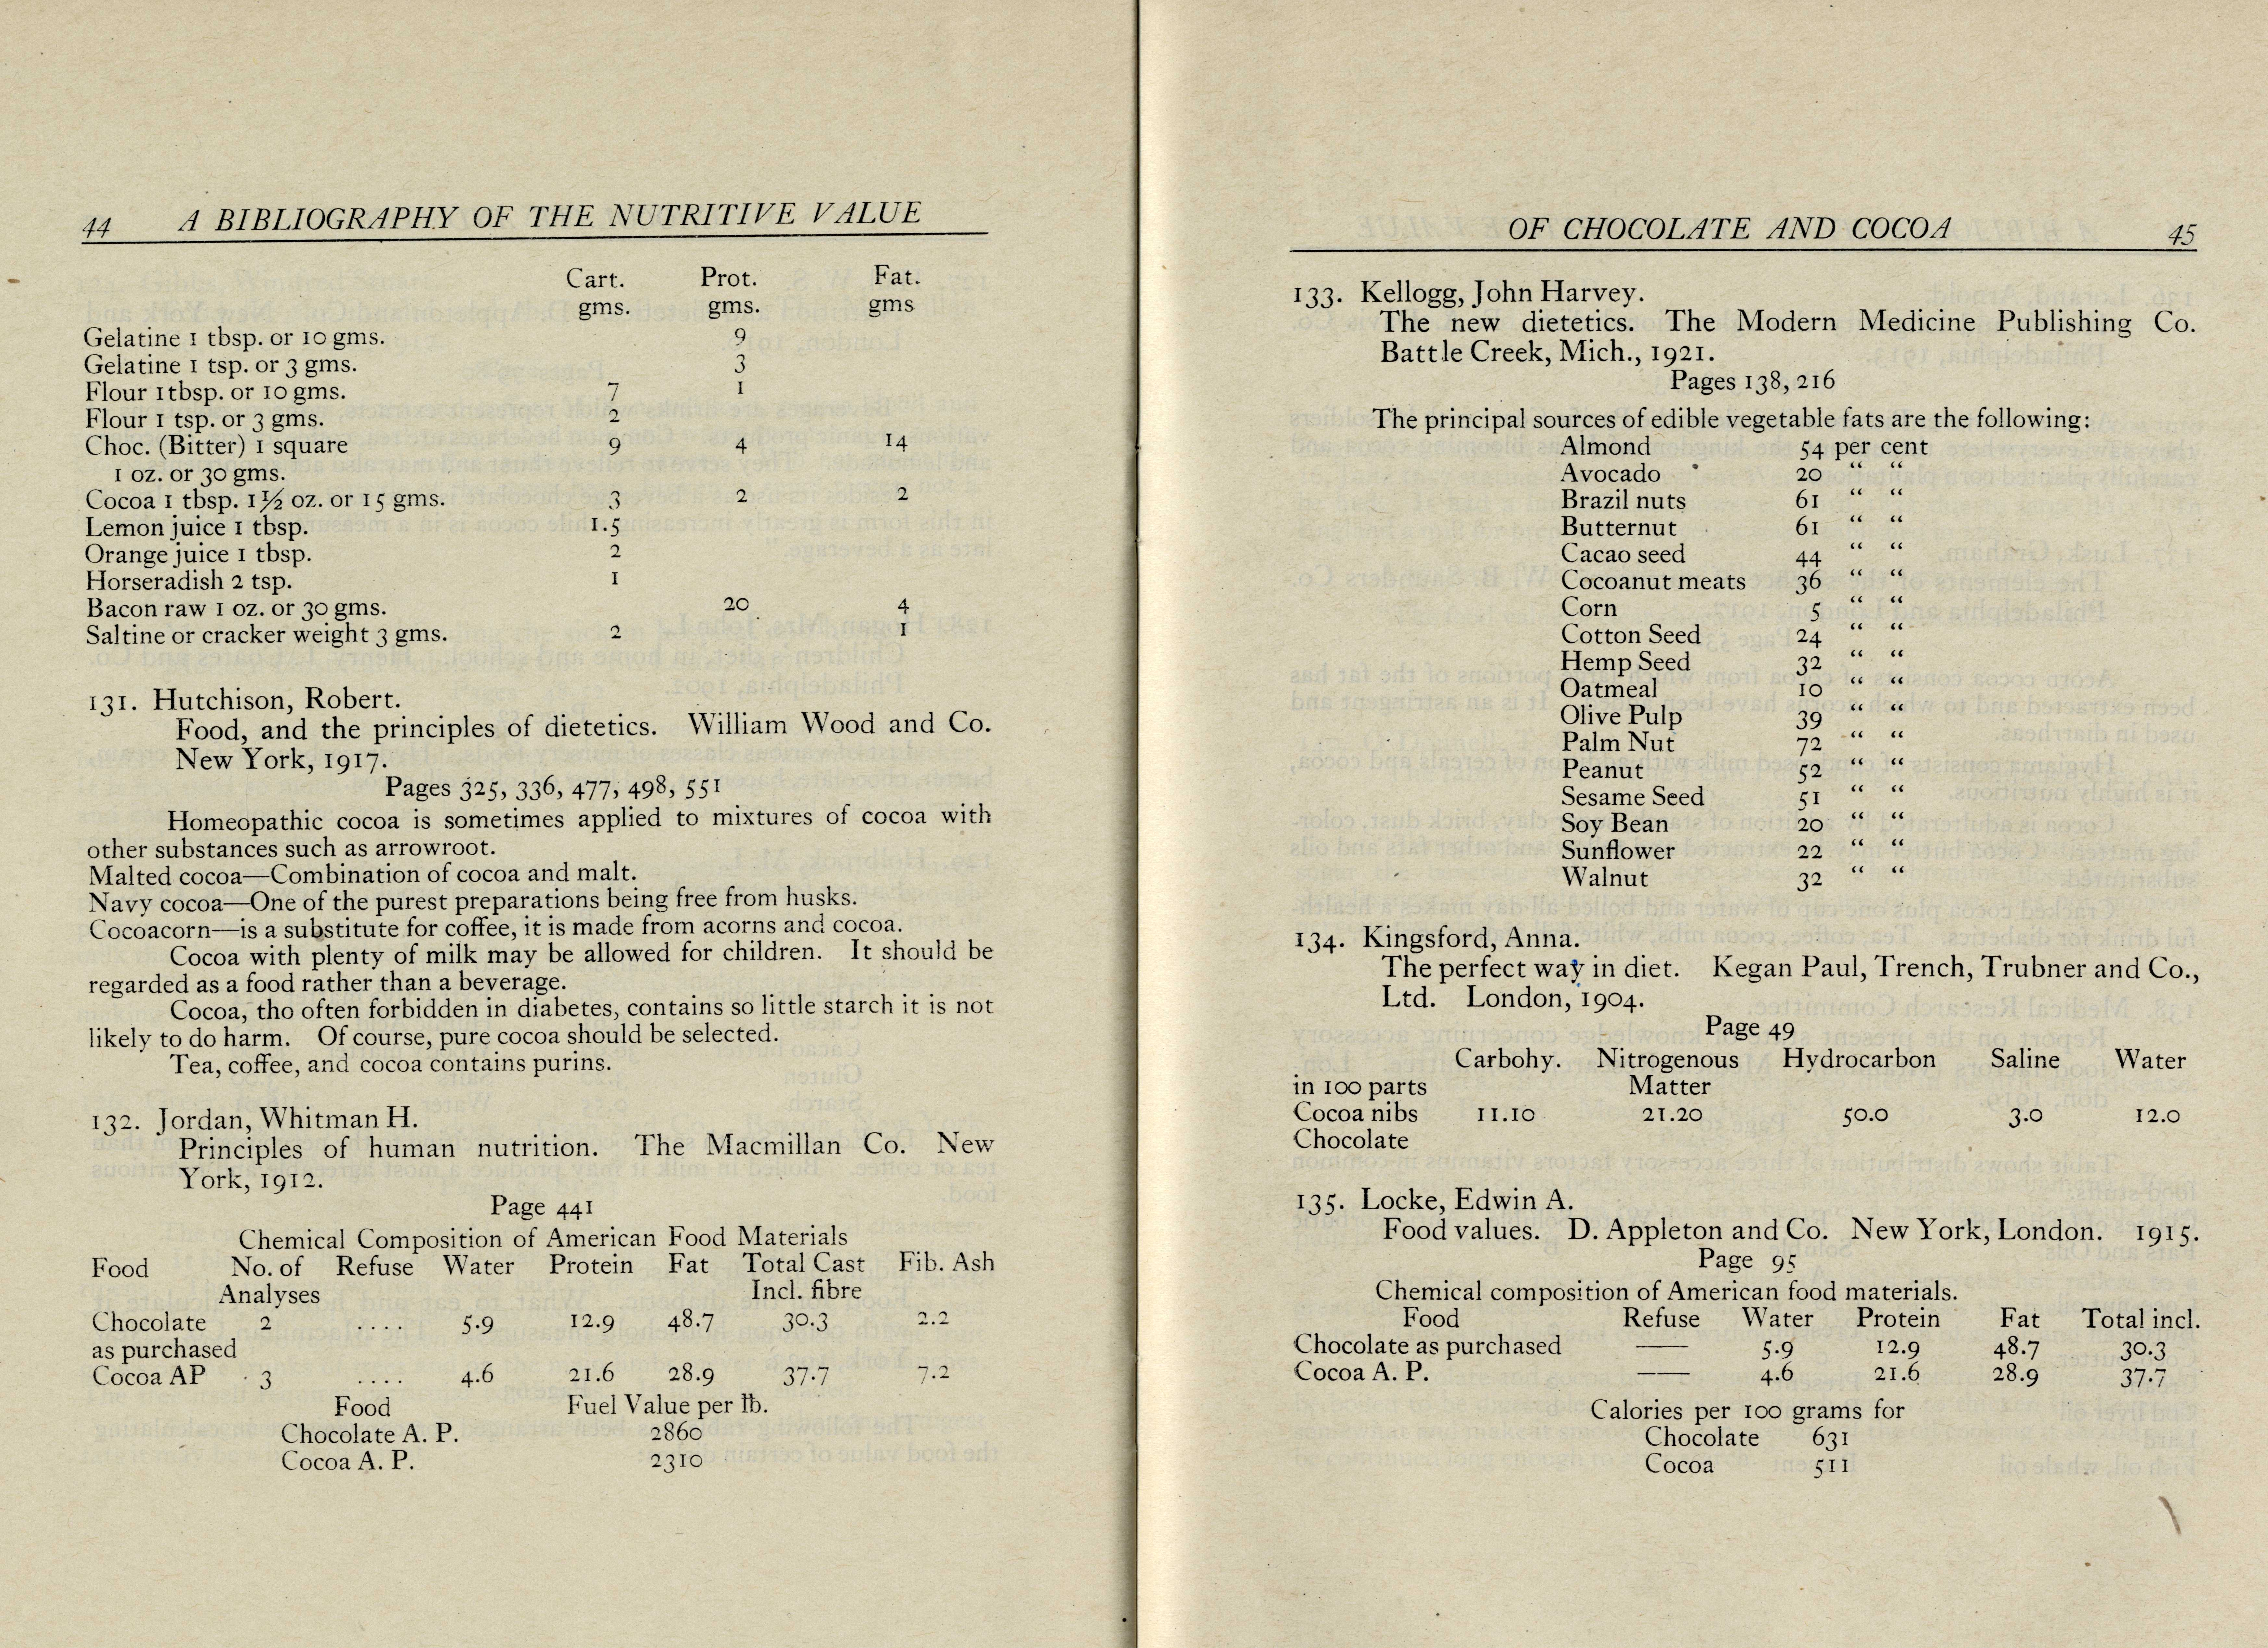 File:The Nutritive Value of Chocolate and Cocoa Booklet